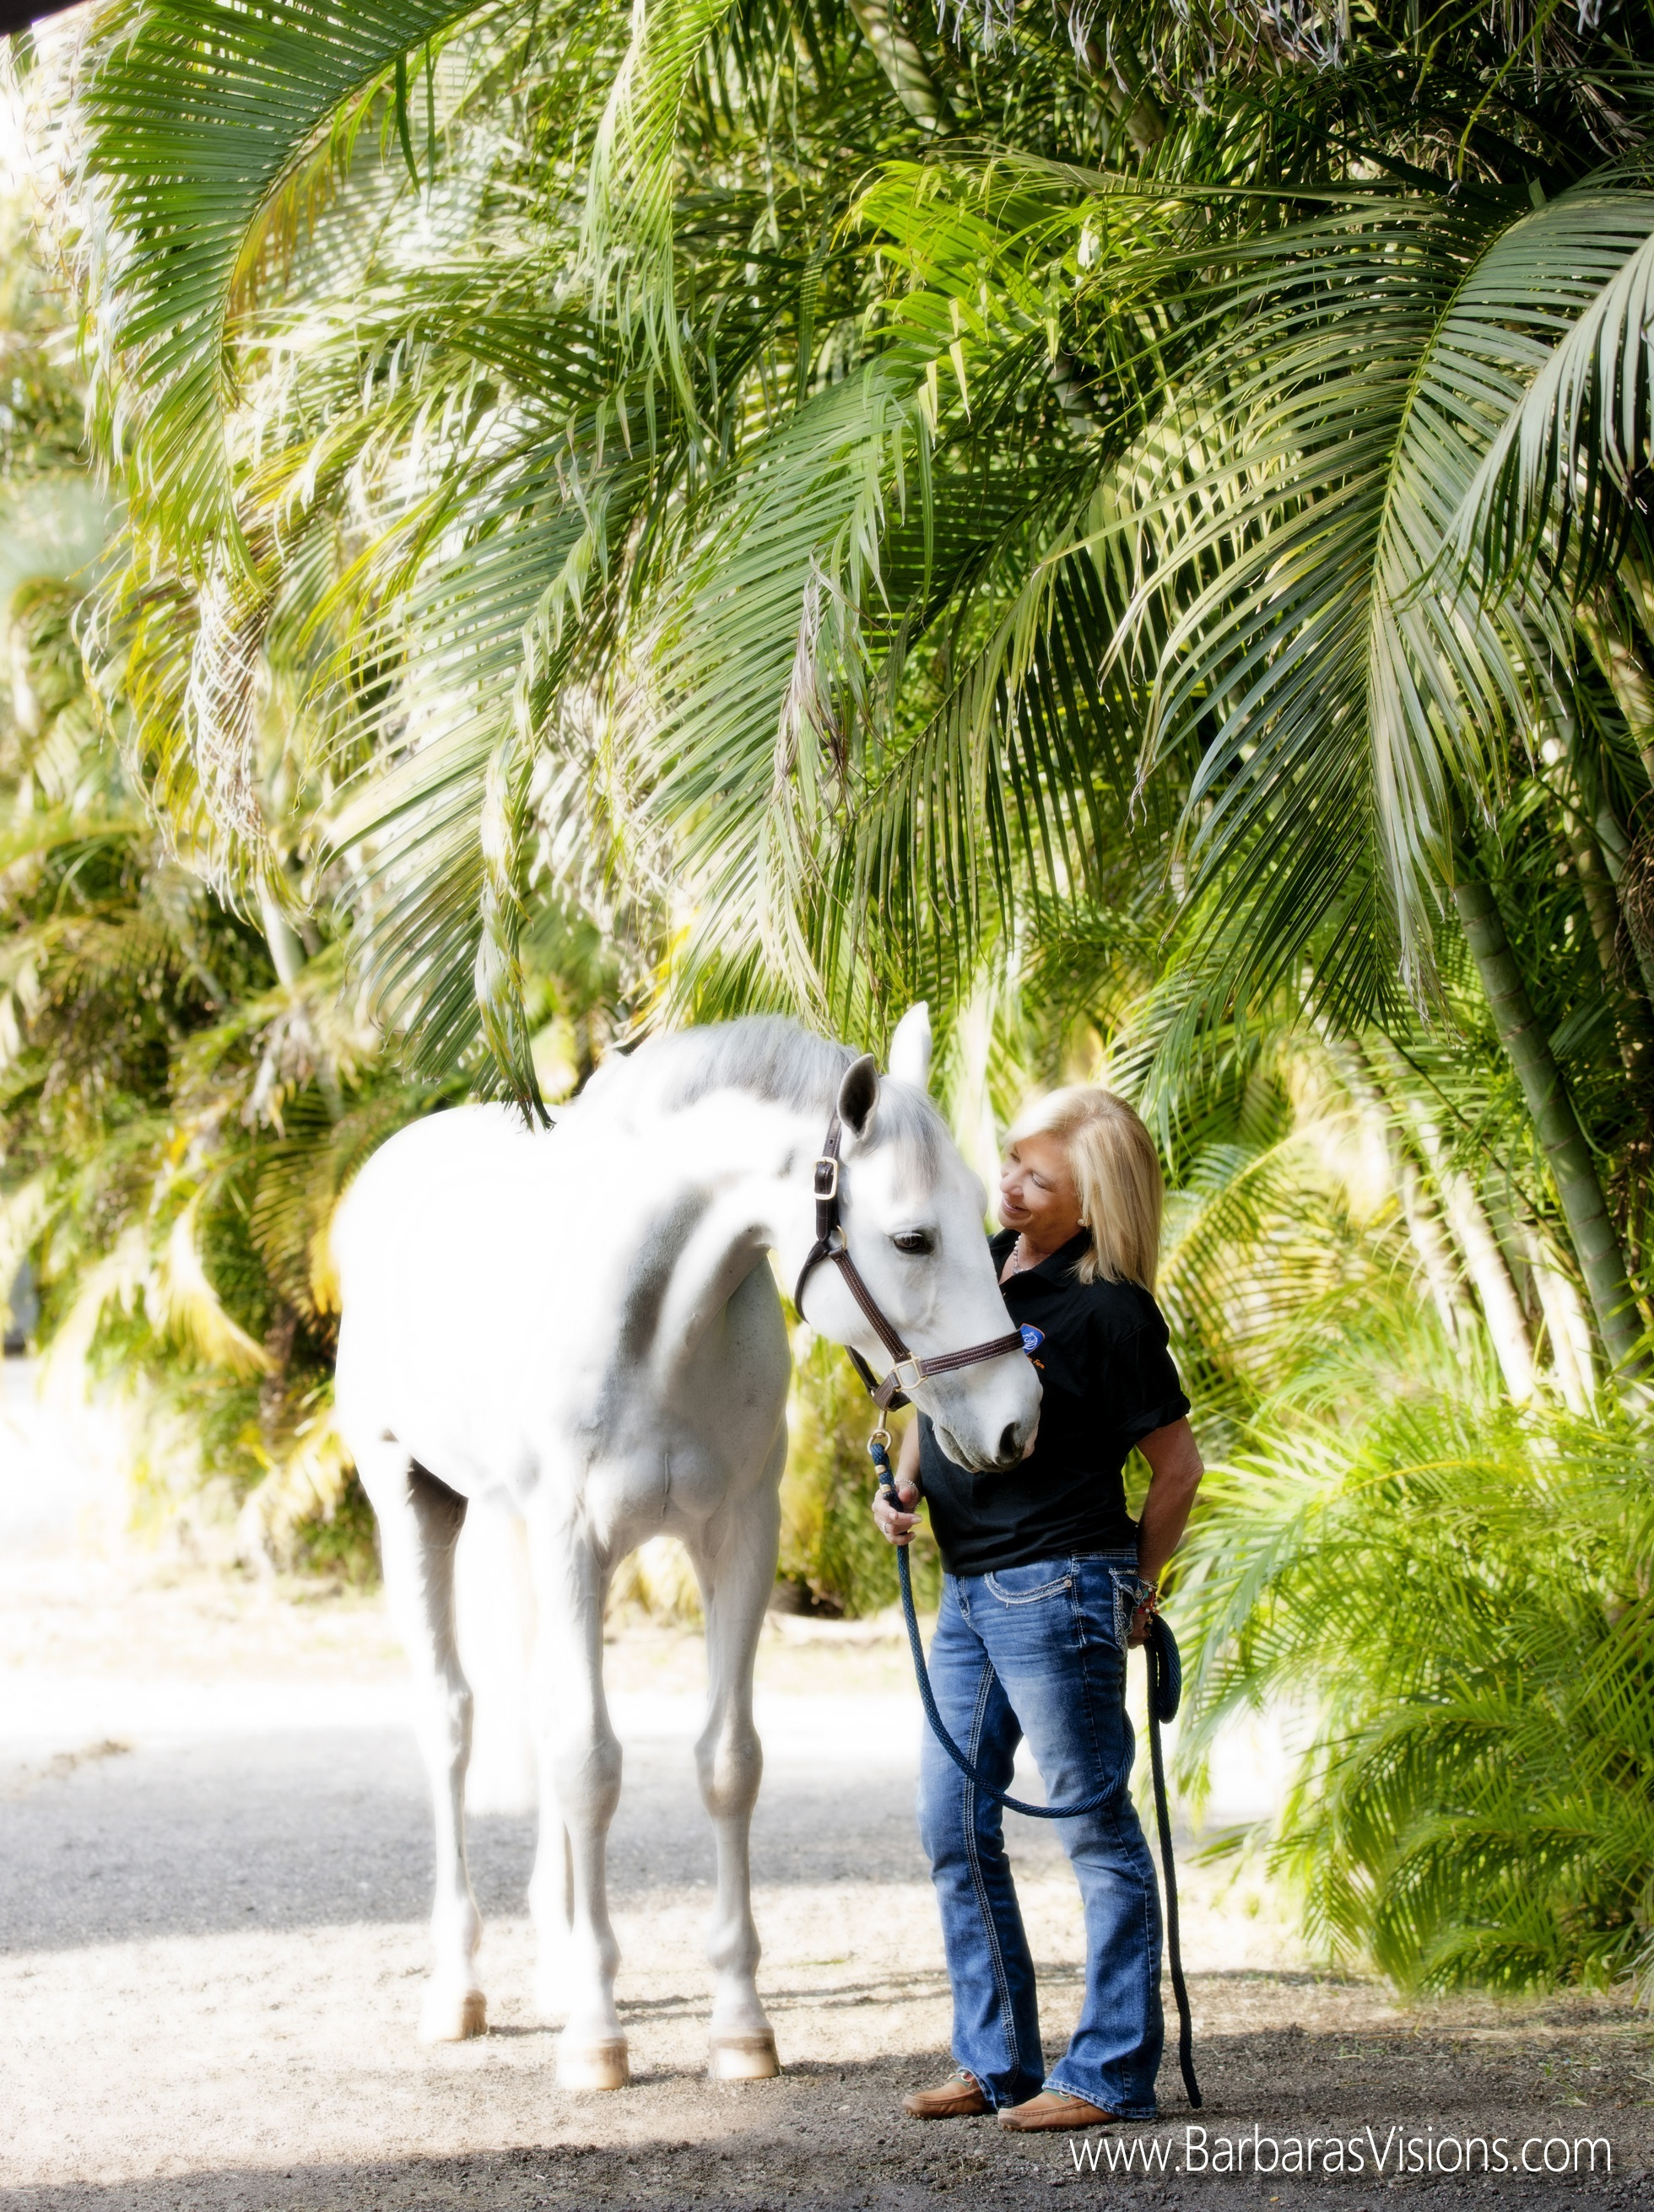 Liliane spends a moment with one of her horses in Florida. (Photo by Barbara Bower, www.barbarasvisions.com)